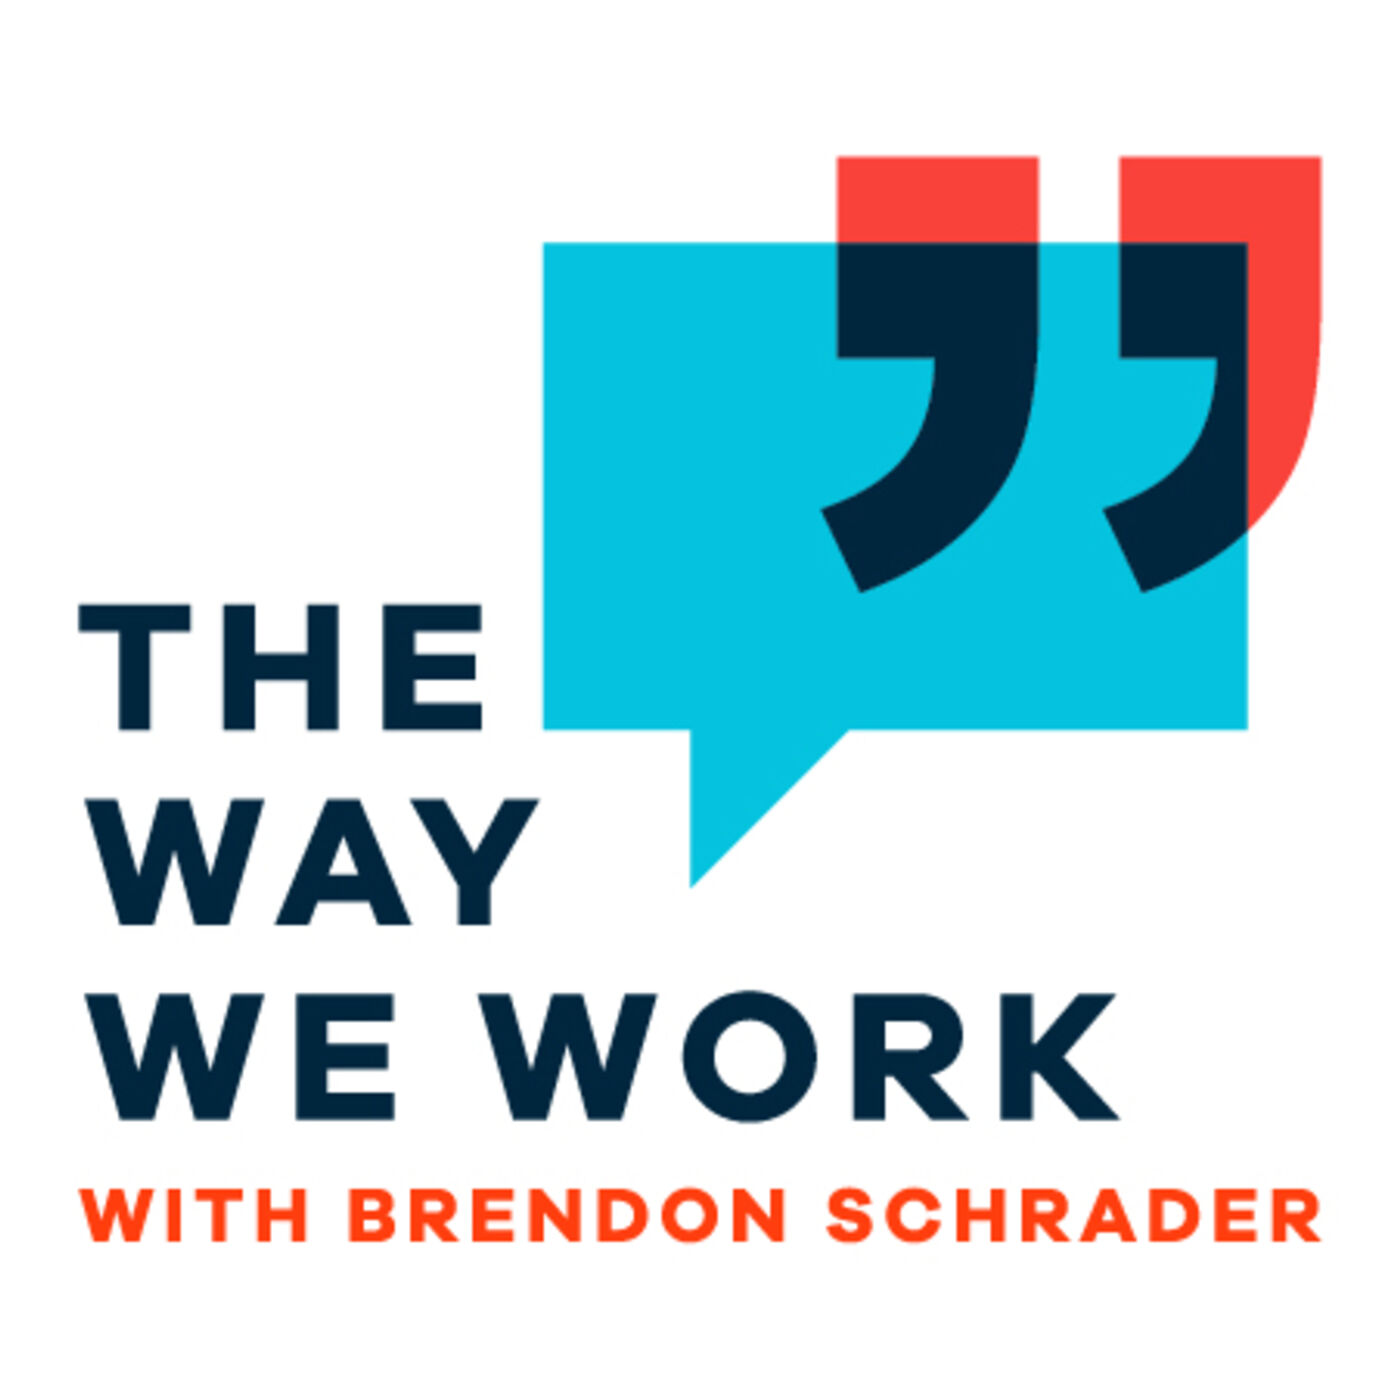 Episode Four: Linda Nazareth and the World of Work in 2020